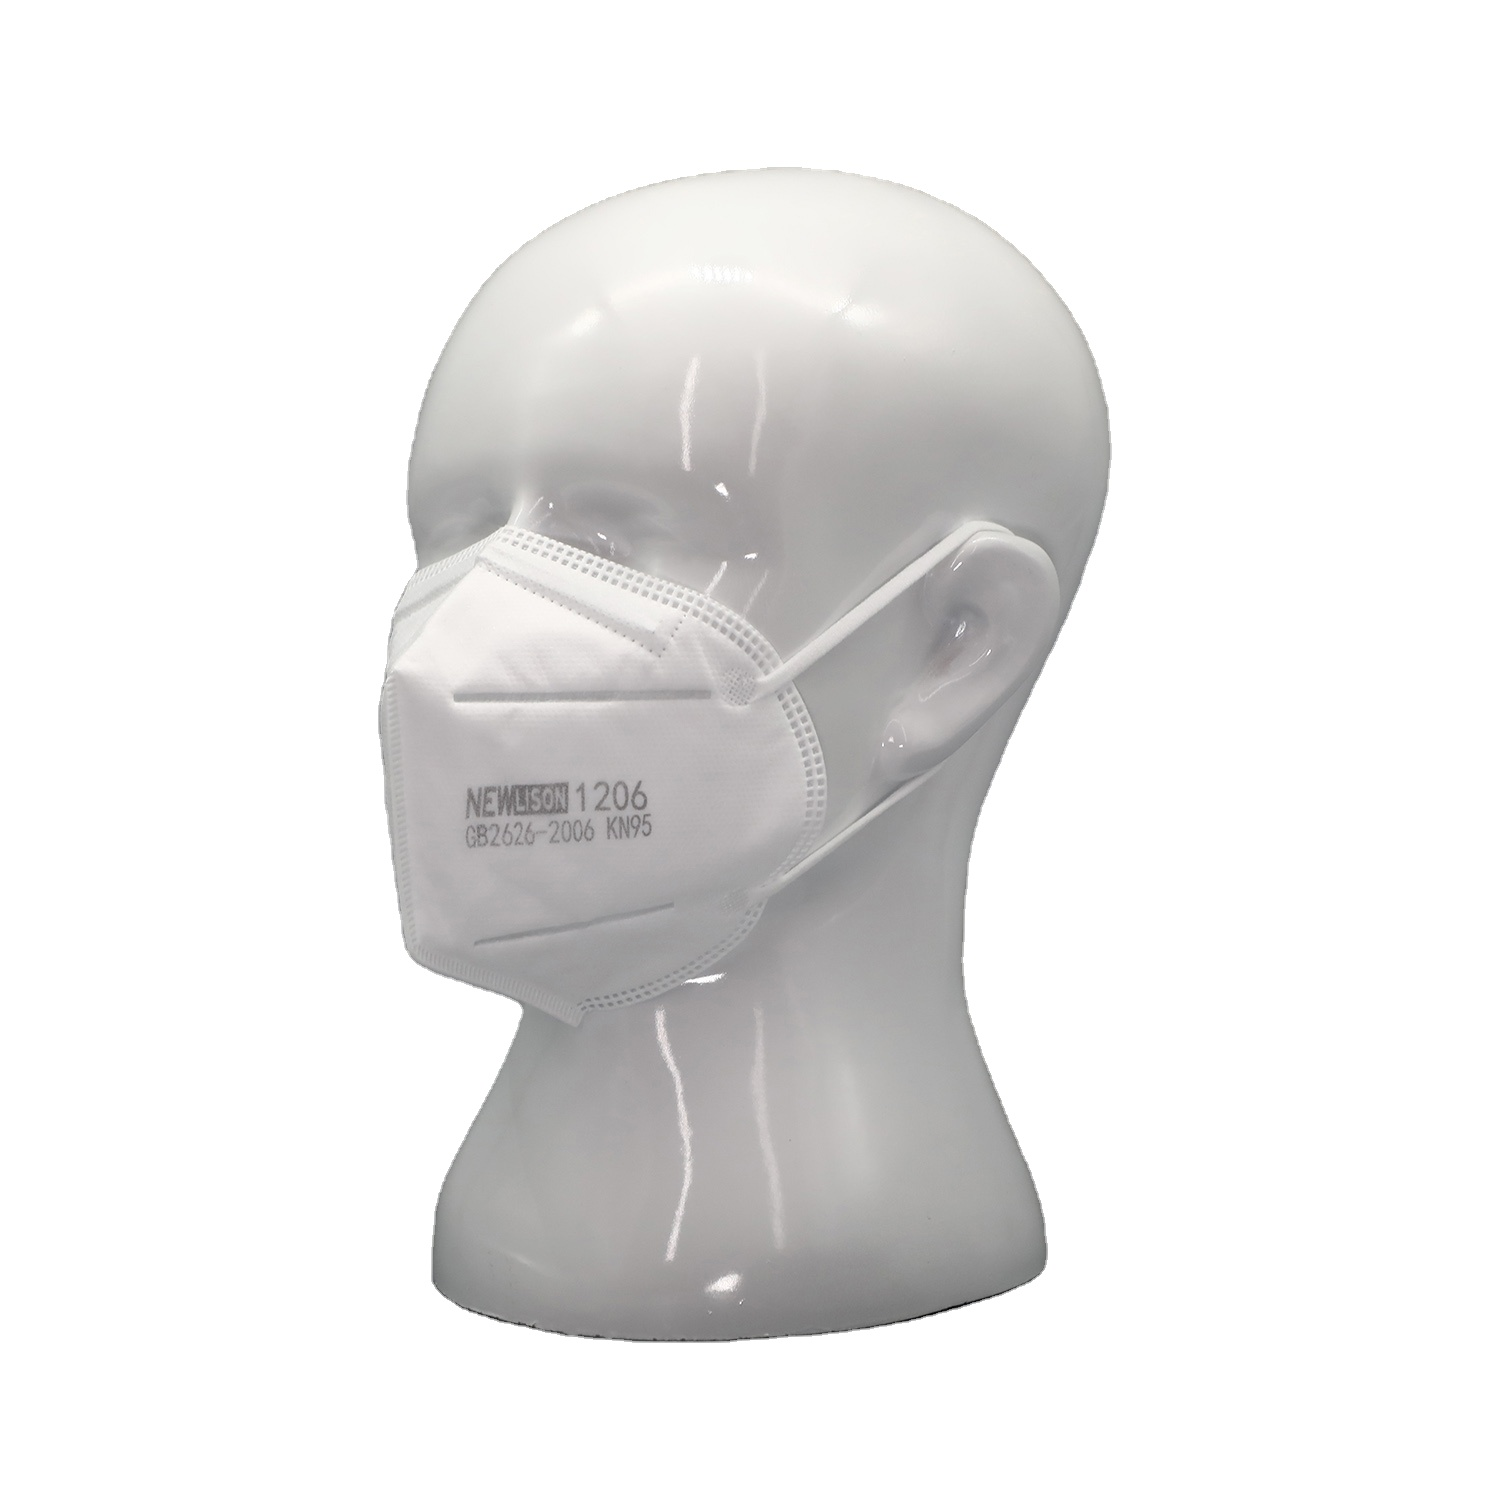 Kevin RTS 1206 Face Mask CE Certificated FFP2 PPE White List Designer Disposable Mask KN95 - KingCare | KingCare.net